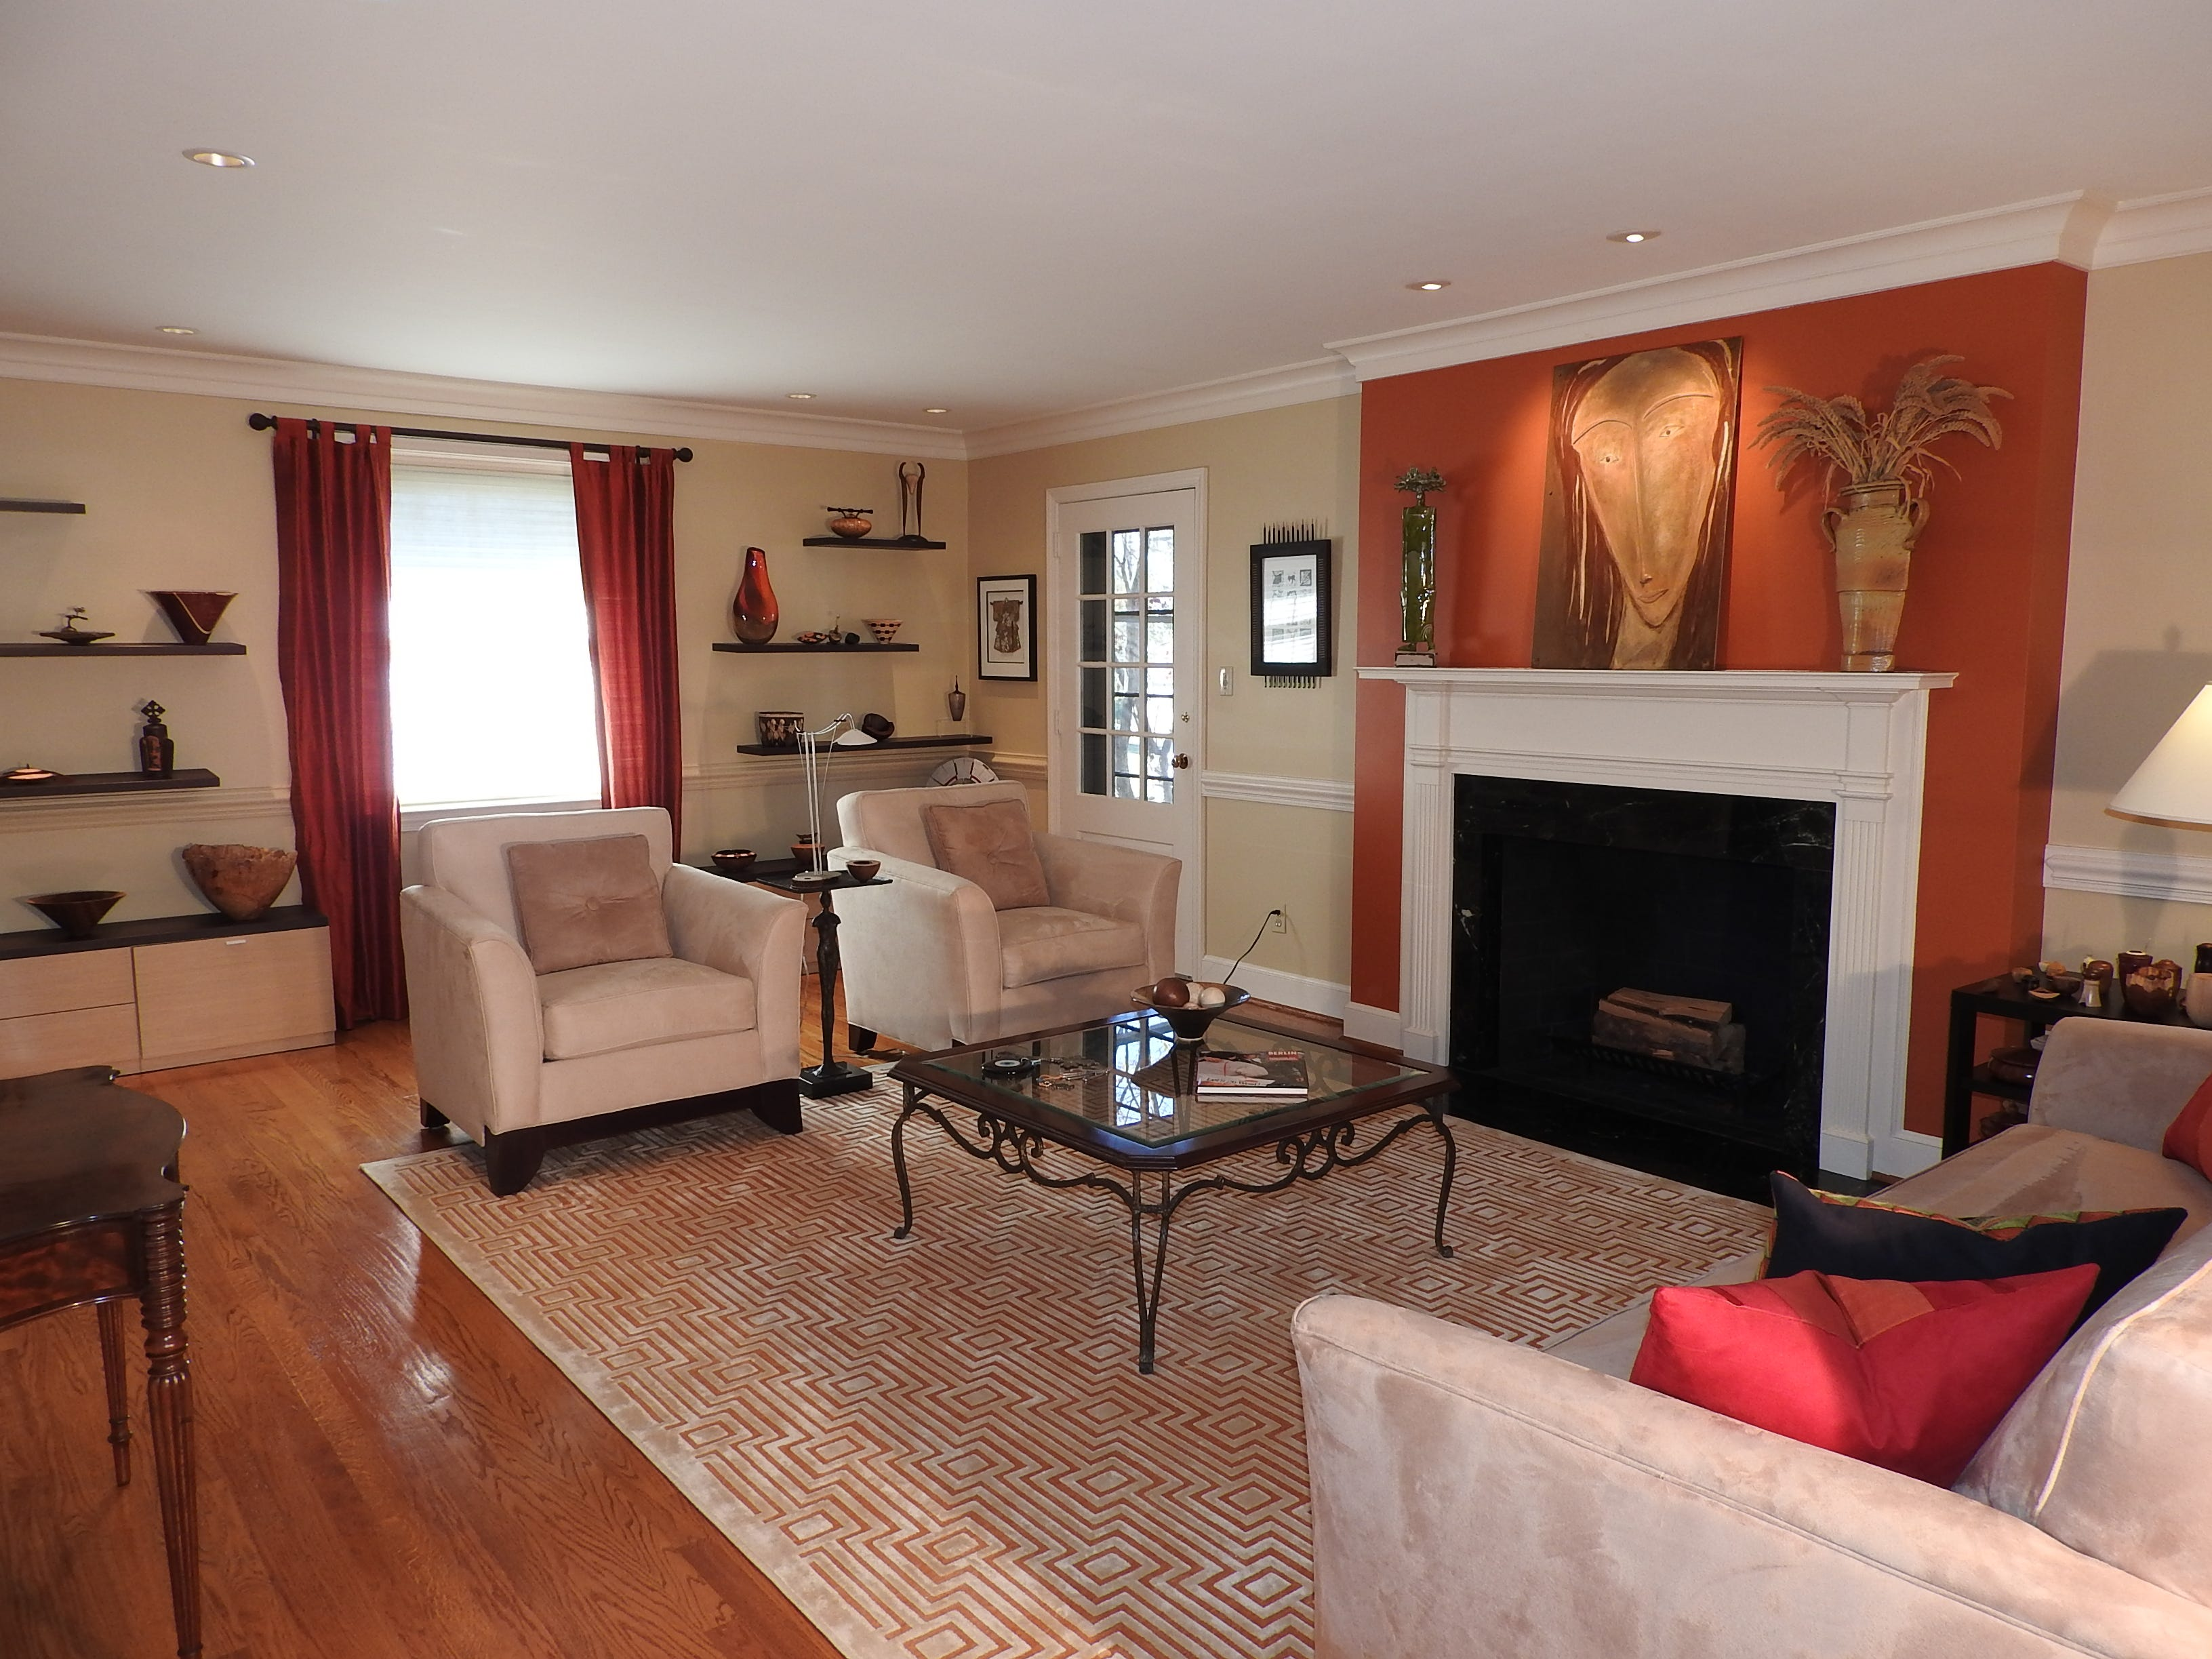 There's a wood-burning fireplace in the formal living room at 103 Edgewood Road in Alapocas.